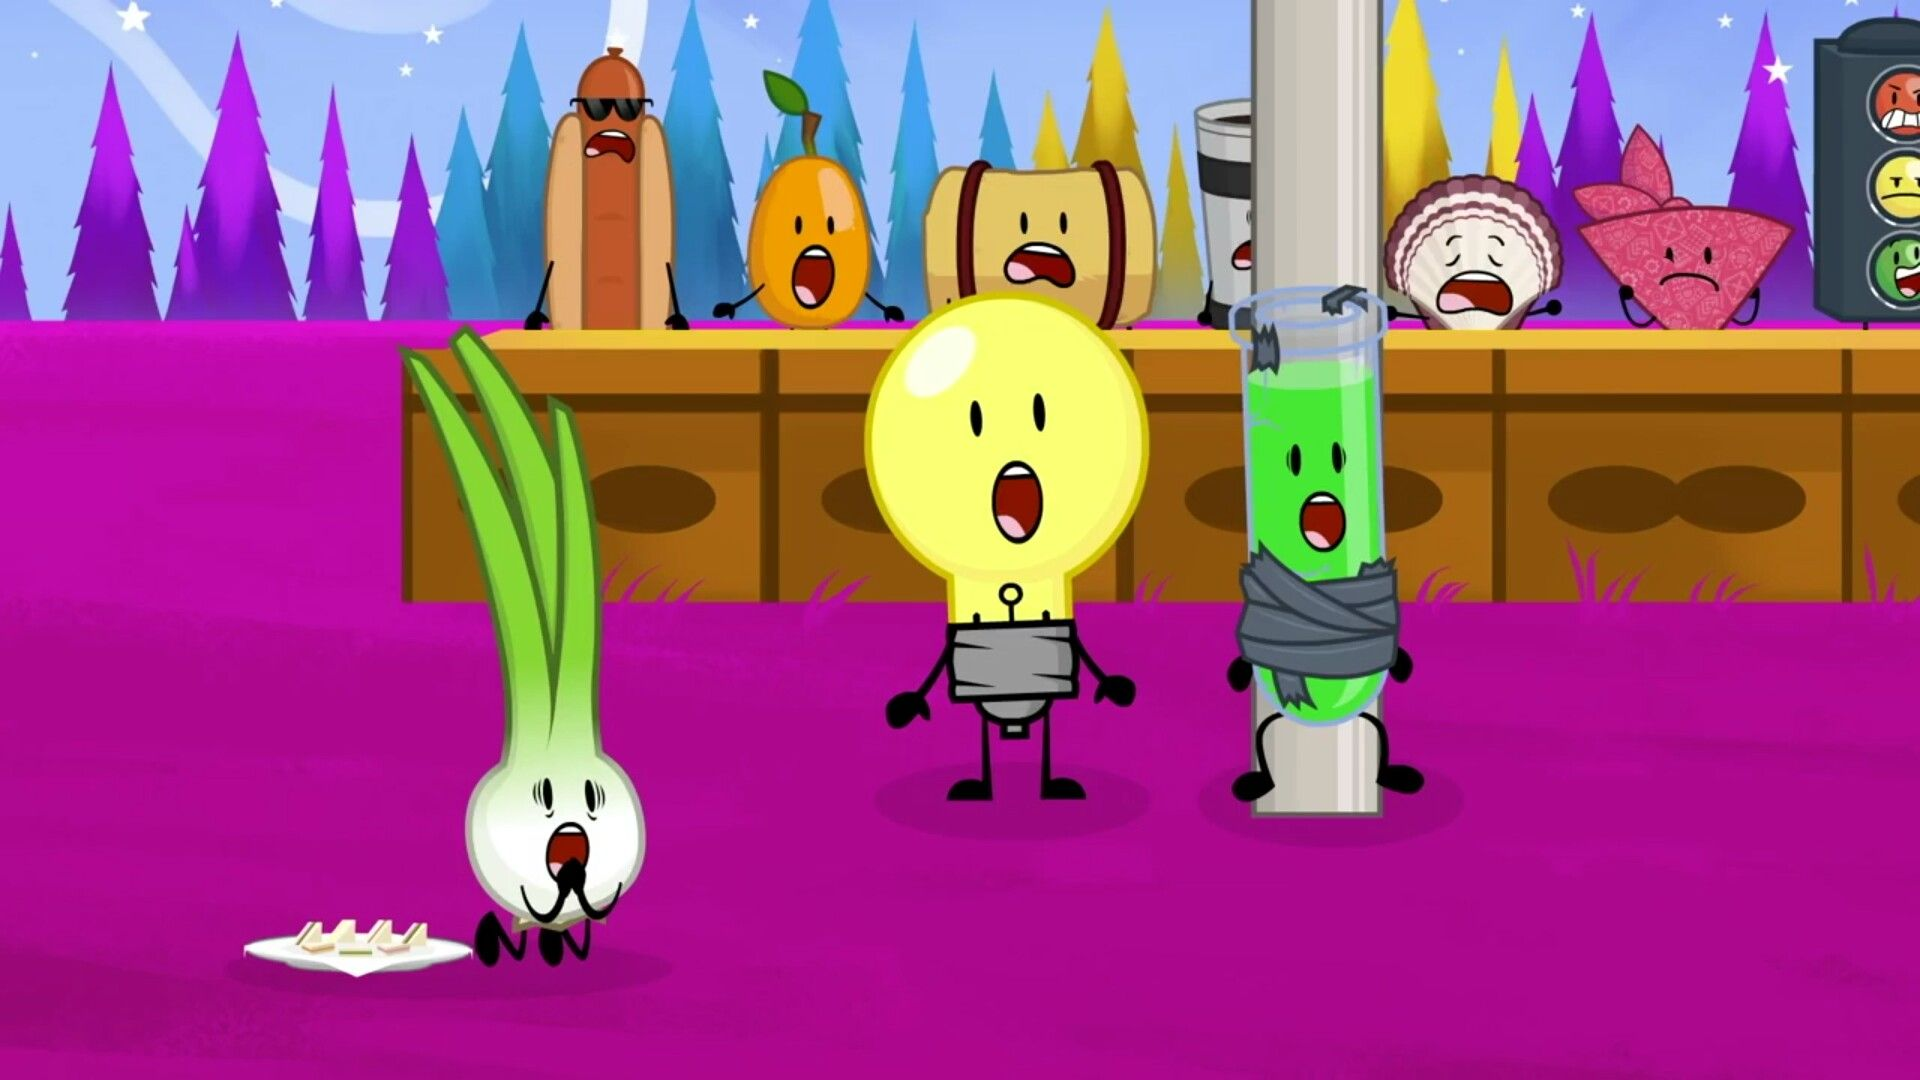 Pin By Boogie On Inanimate Insanity And Bfdi Art Artwork Object